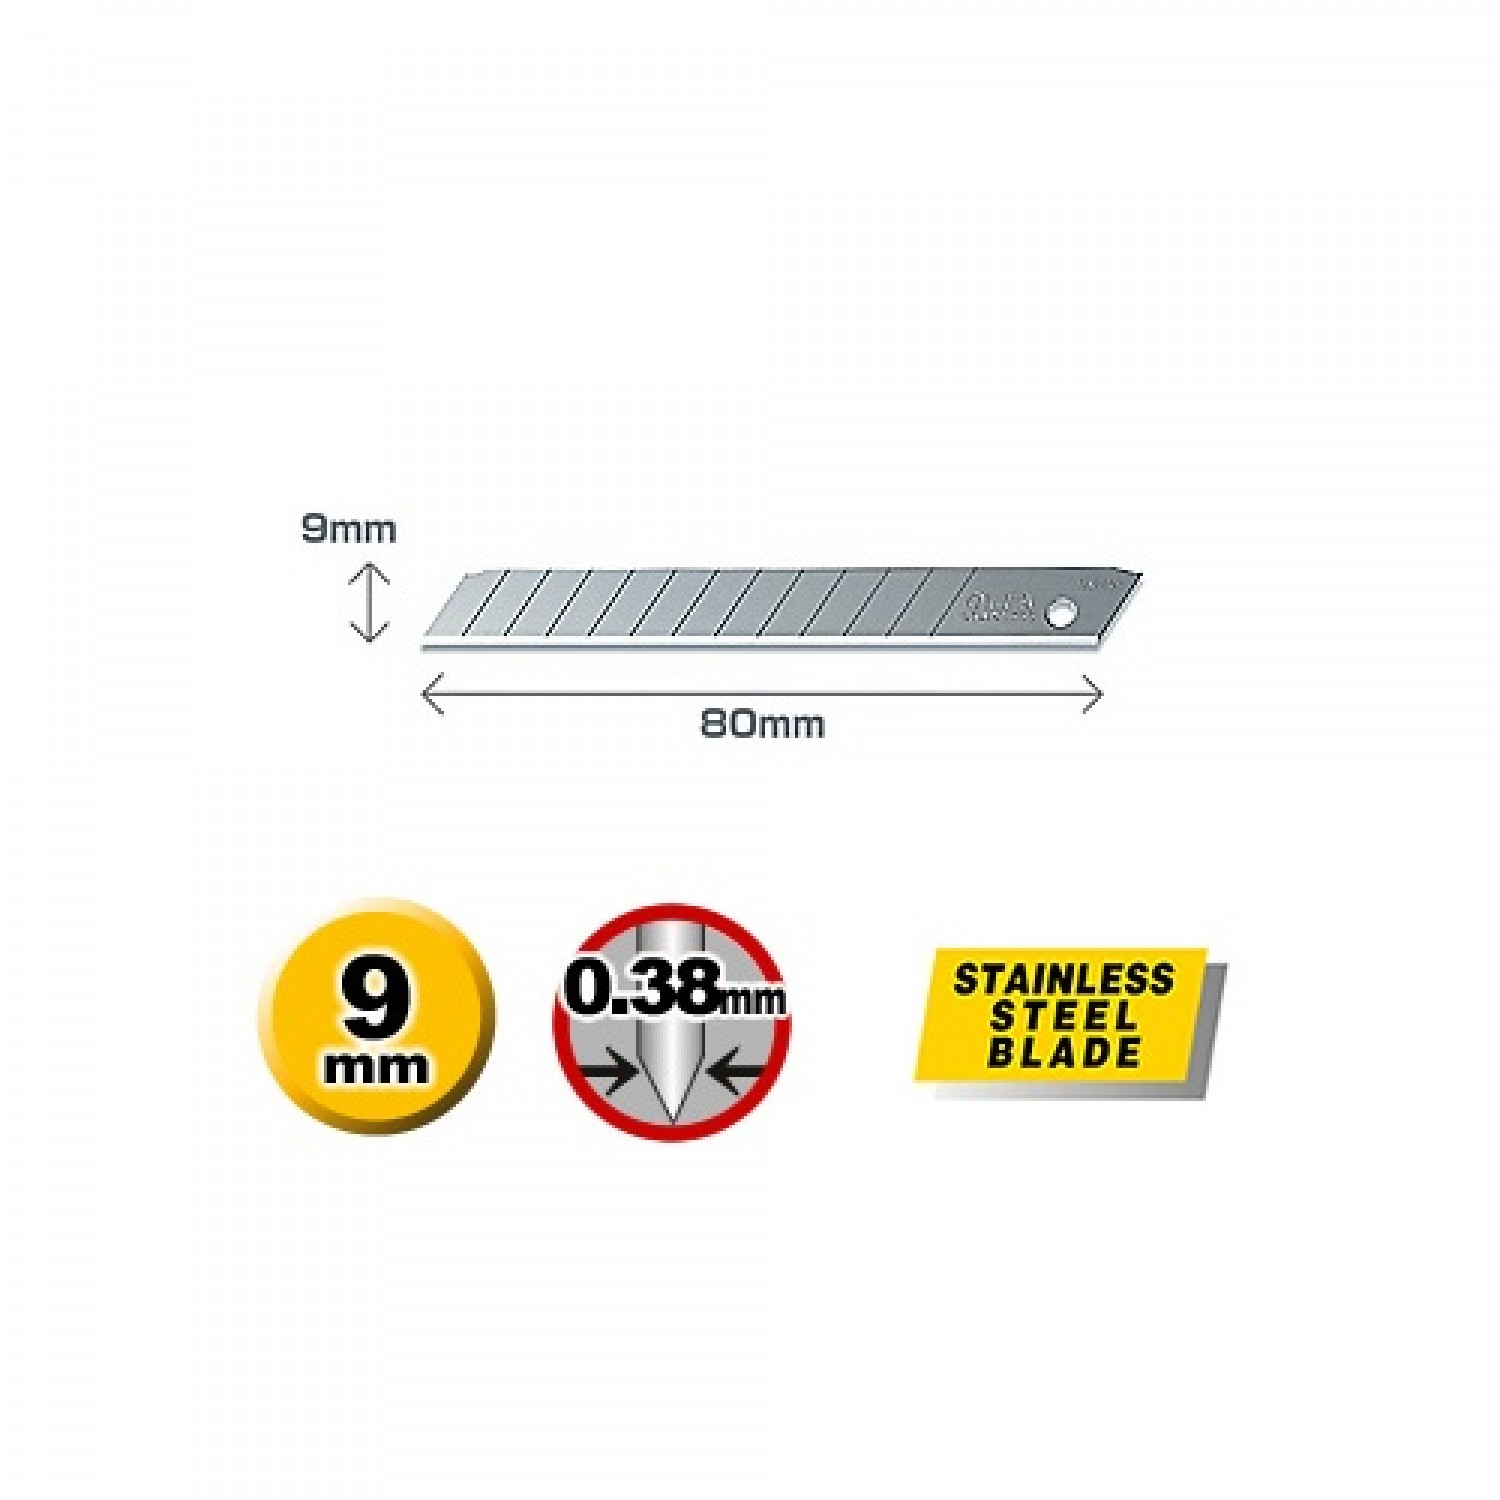 Olfa AB-50S Stainless Steel Blade Dimensions